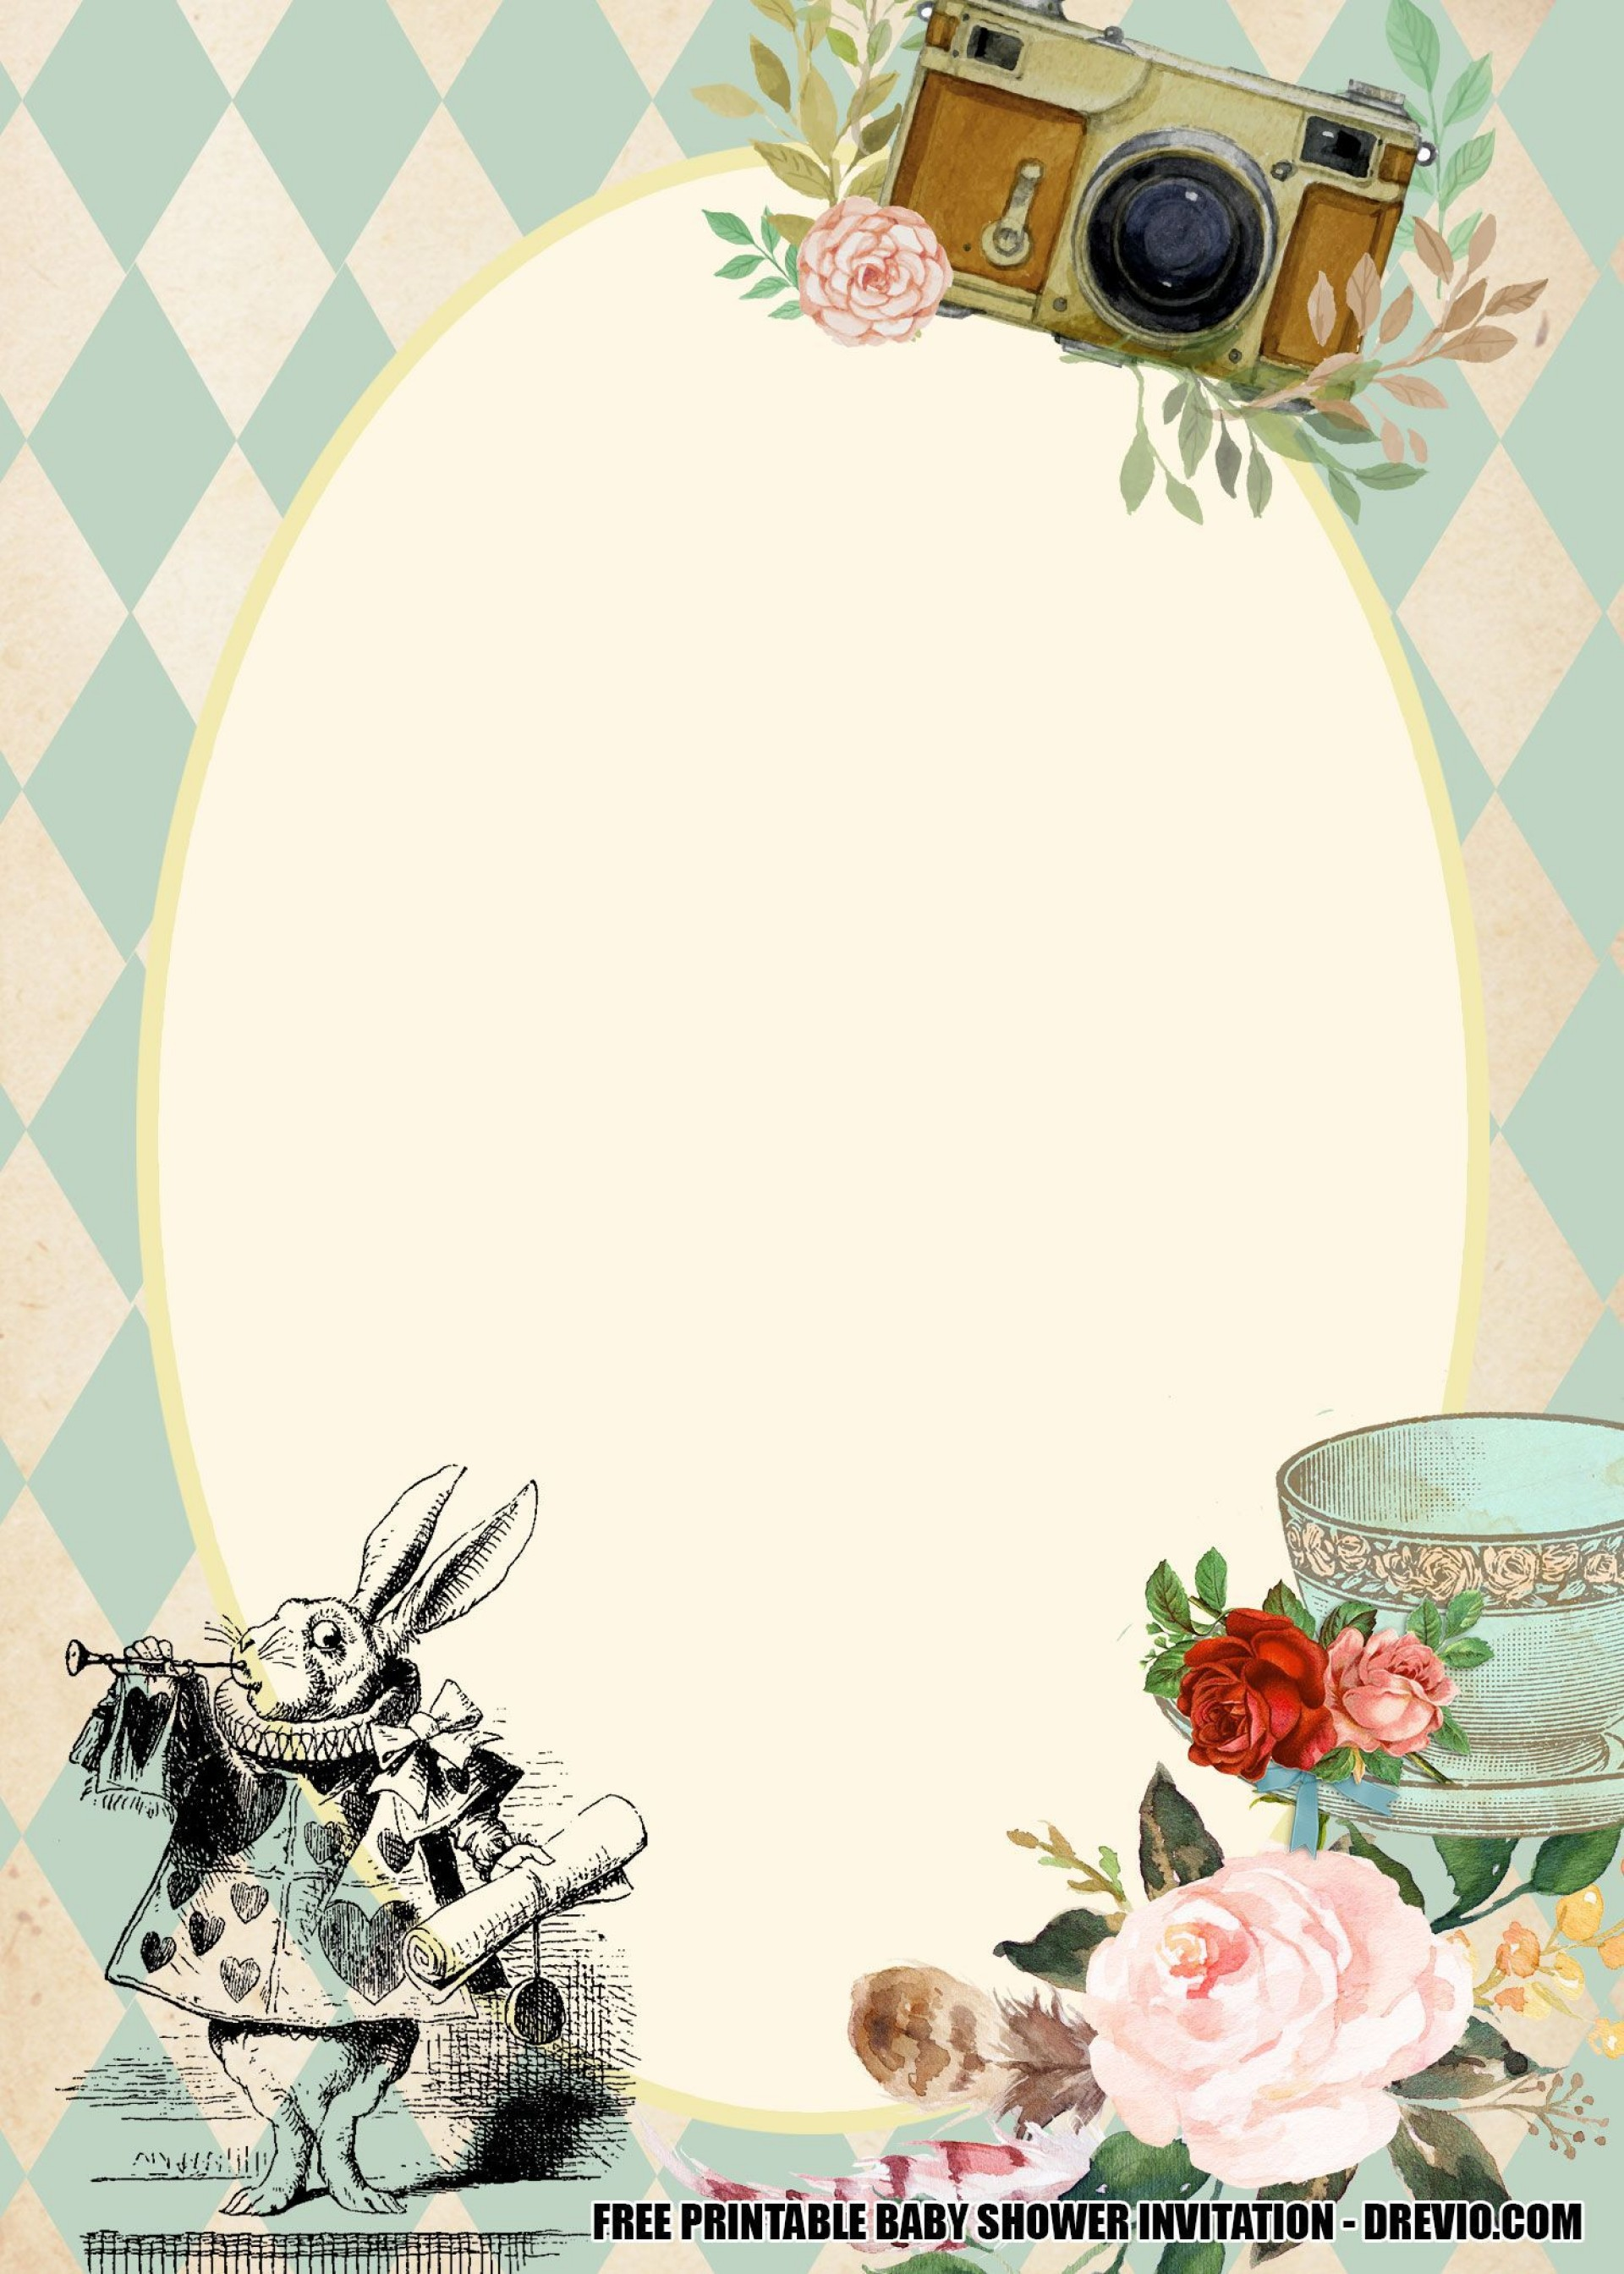 003 Awful Alice In Wonderland Invite Template High Resolution  Party Invitation Free1920